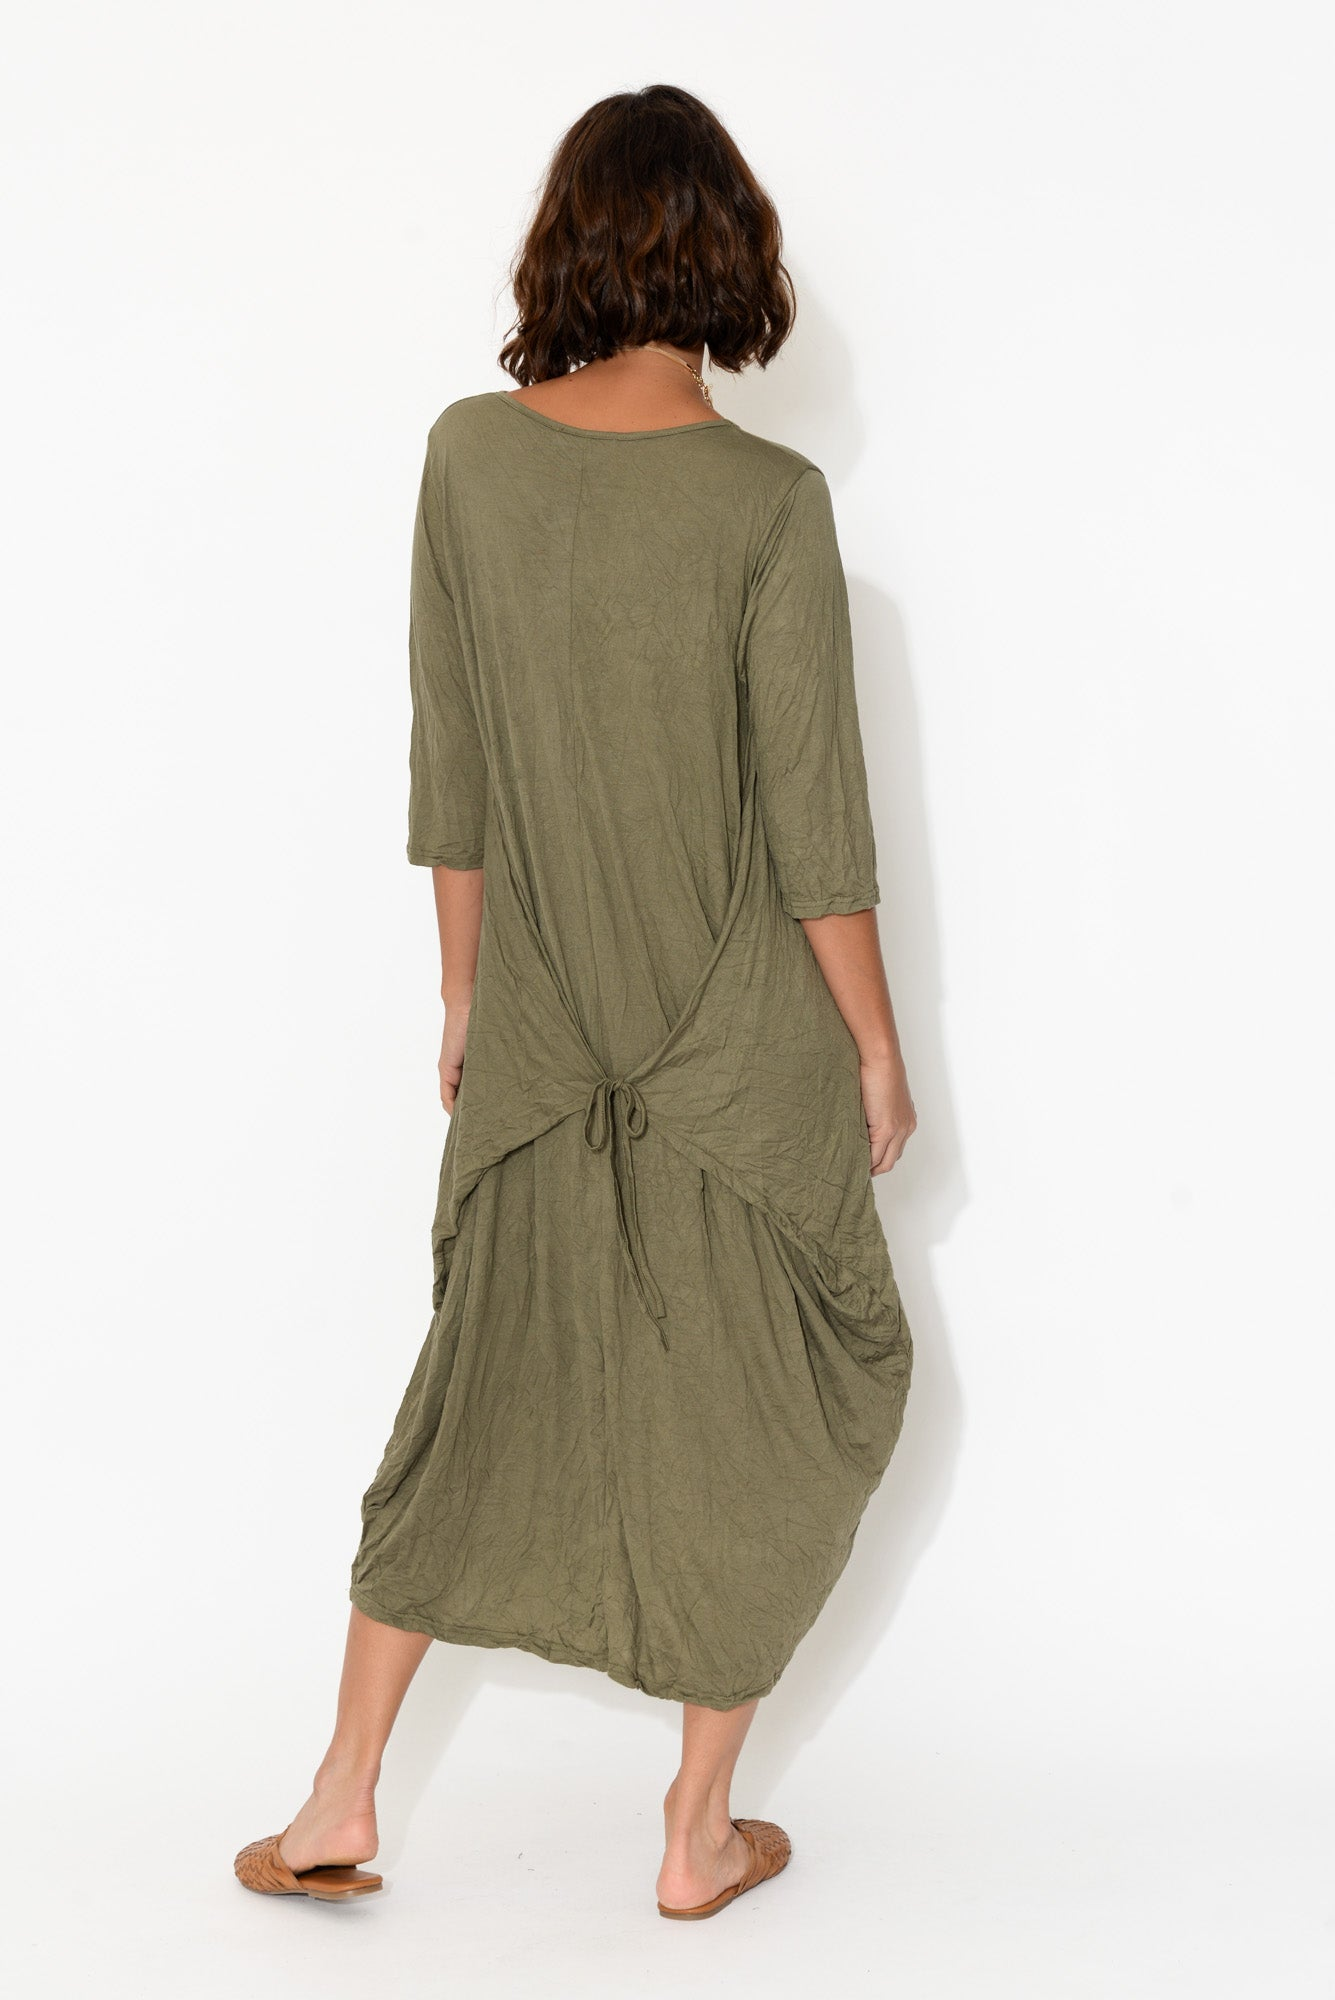 Olive Five Way Crinkle Cotton Dress